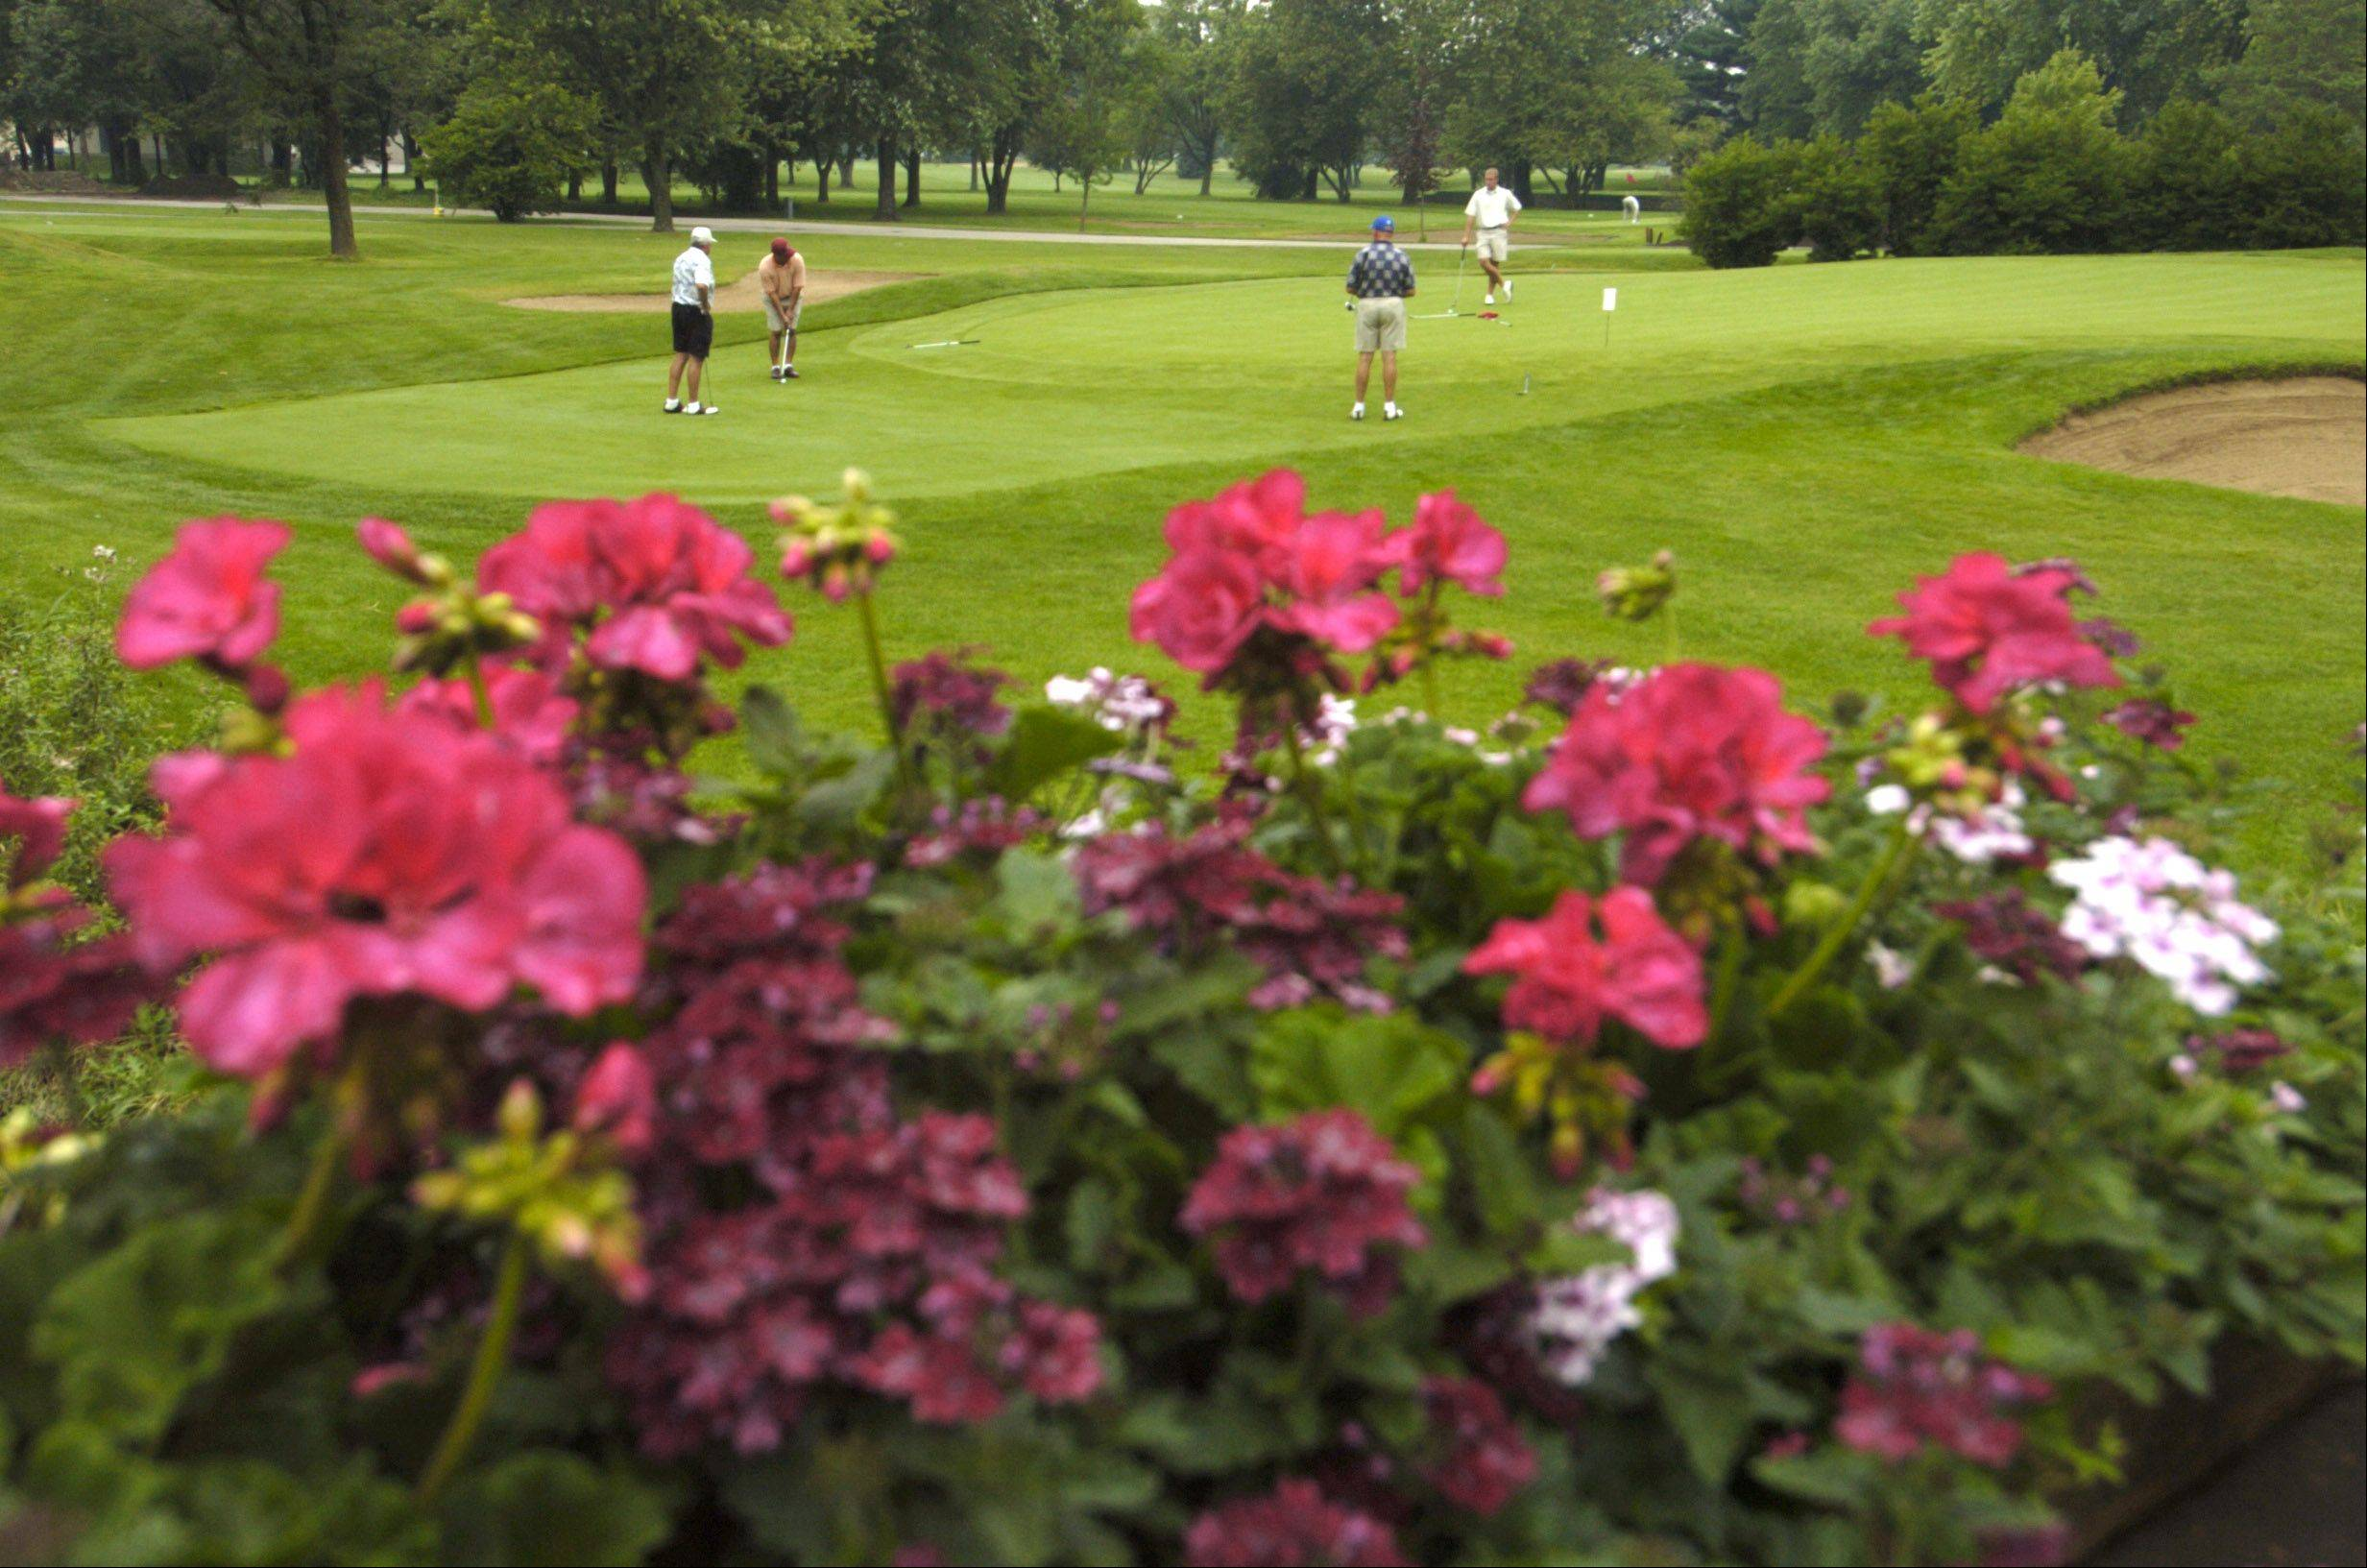 The Mount Prospect Park District is back to the drawing board with a key part of its $6 million plan to renovate the Mount Prospect Golf Club. Village officials Tuesday night failed to approve the district's request for a zoning variance that would allow it to install a 75-foot-tall net as part of a new driving range.